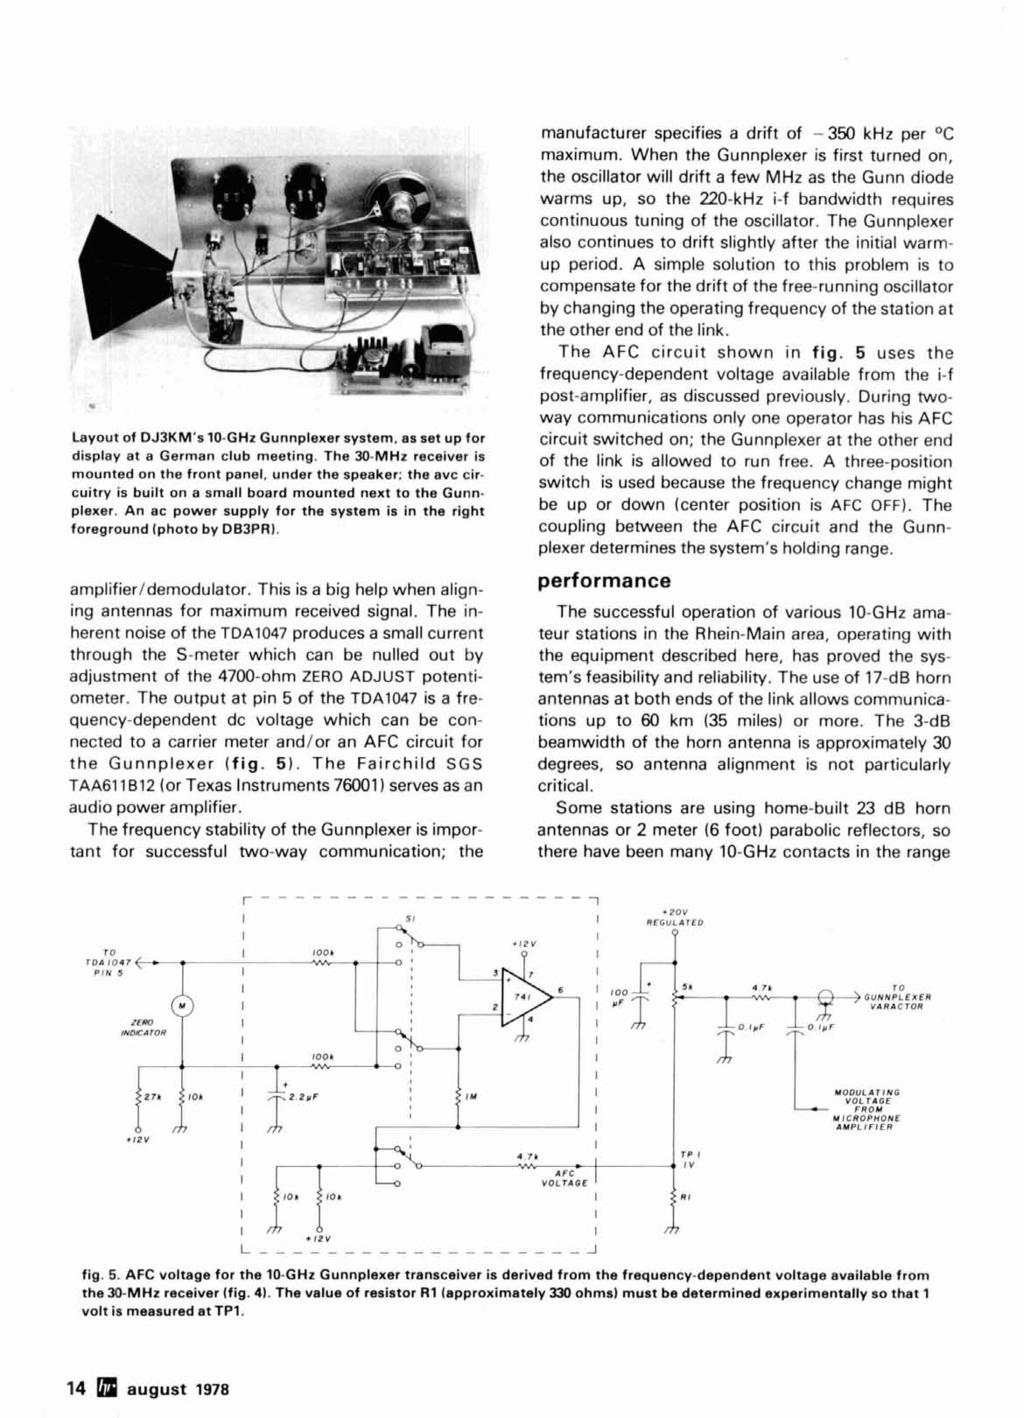 10 G Hz Transceiver For Amateur Microwave Communications Pdf Very Simple Oscillator 7700 Electronics And Computer System Layout Of Dj3kms Ghz Gunnplexer As Set Up Display At A